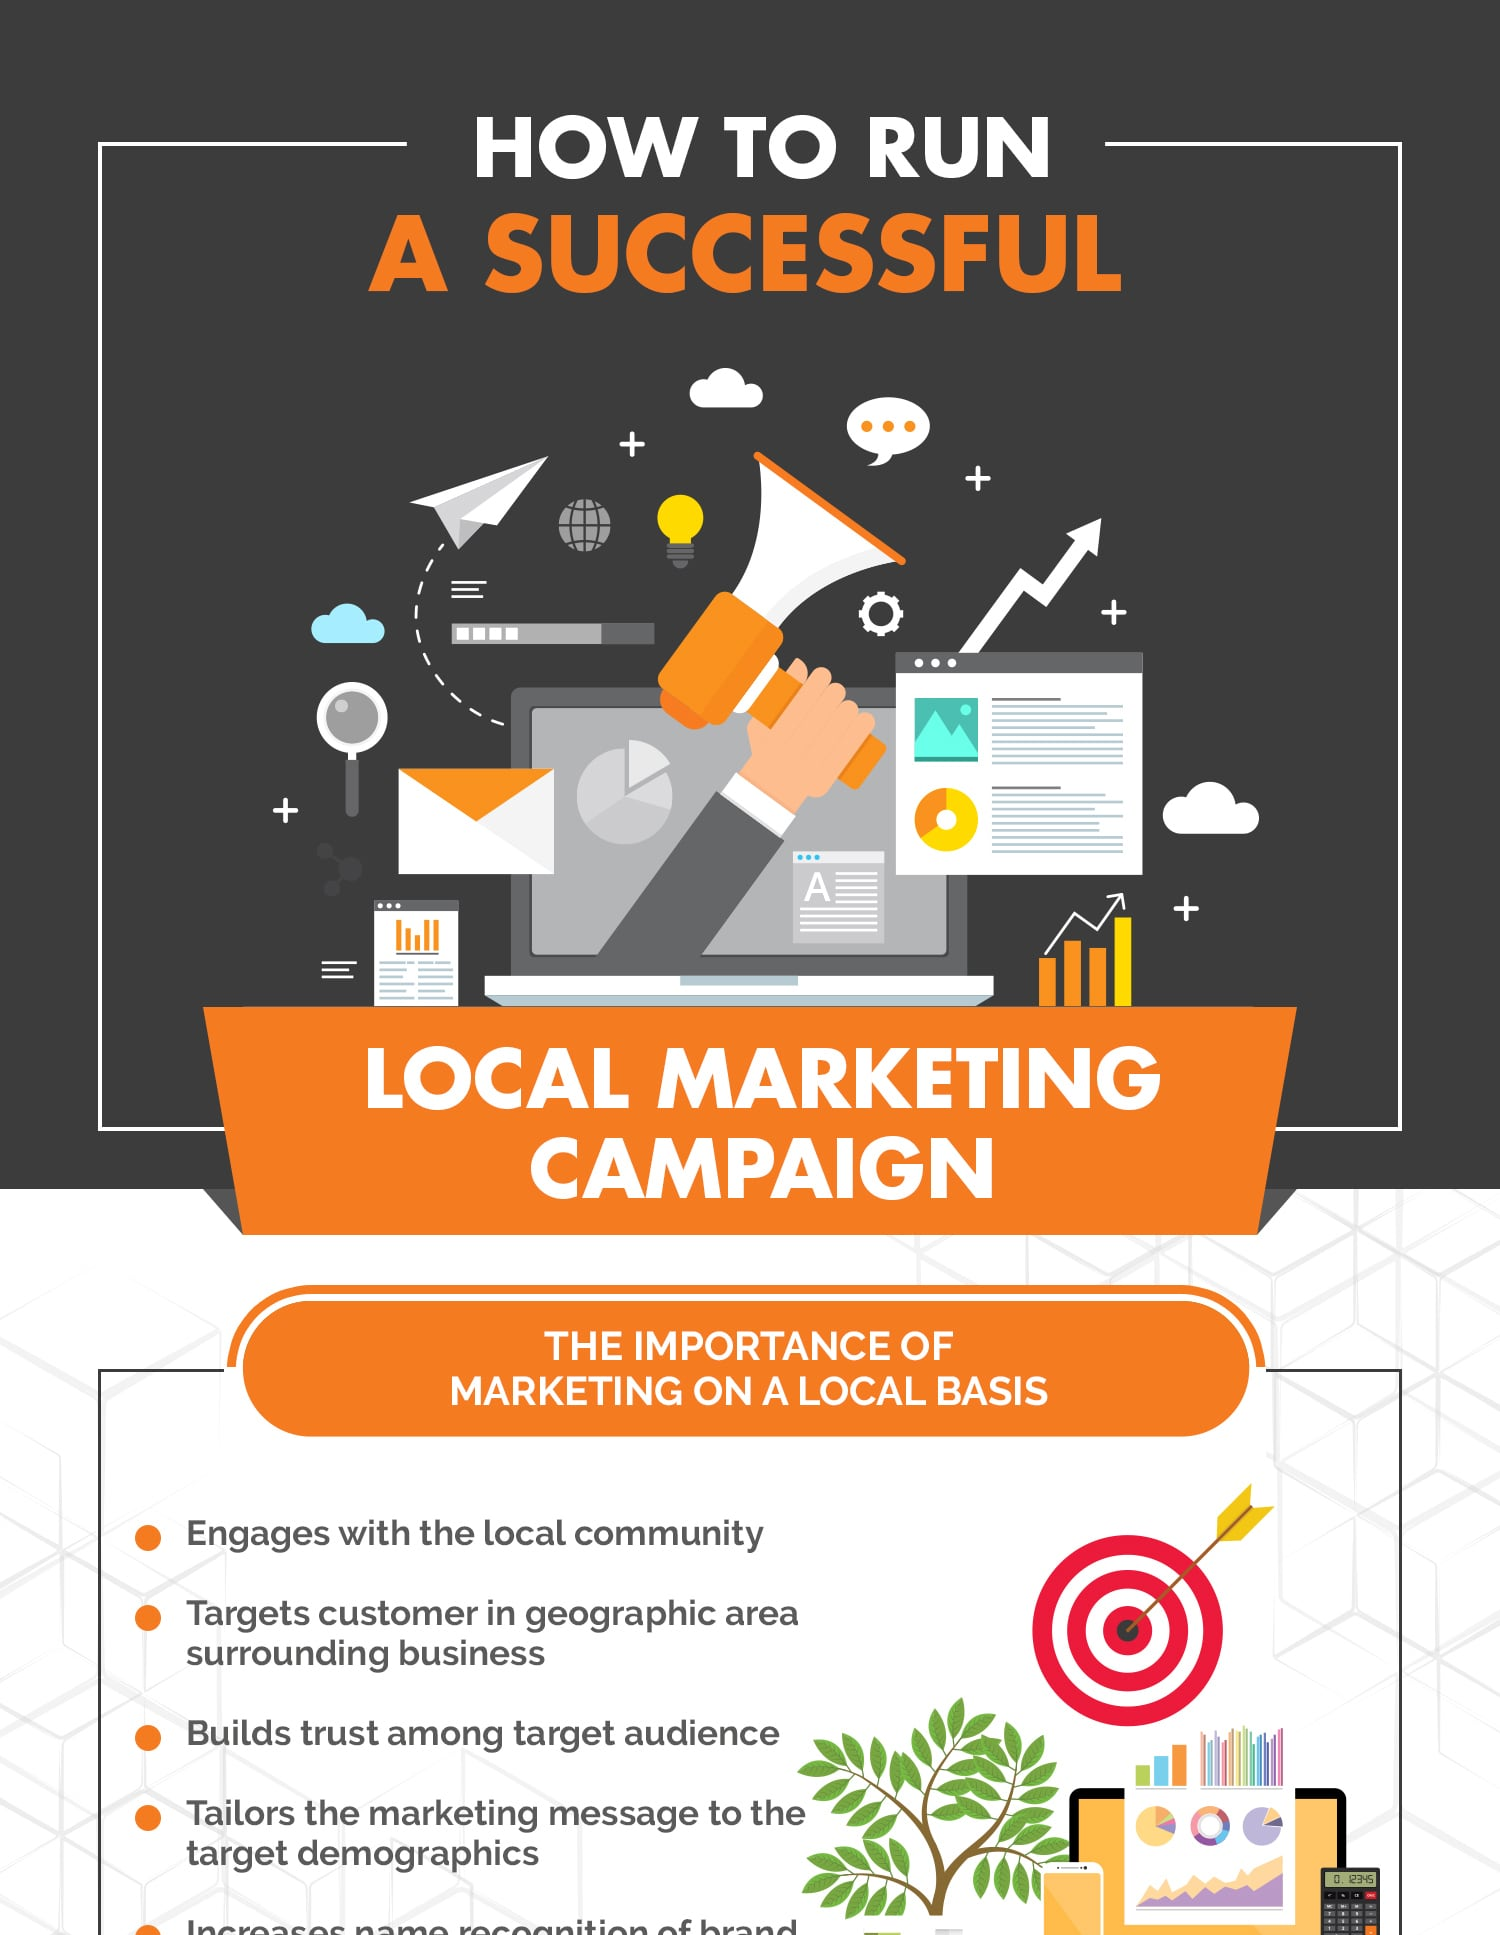 See how to run a successful local marketing campaign.